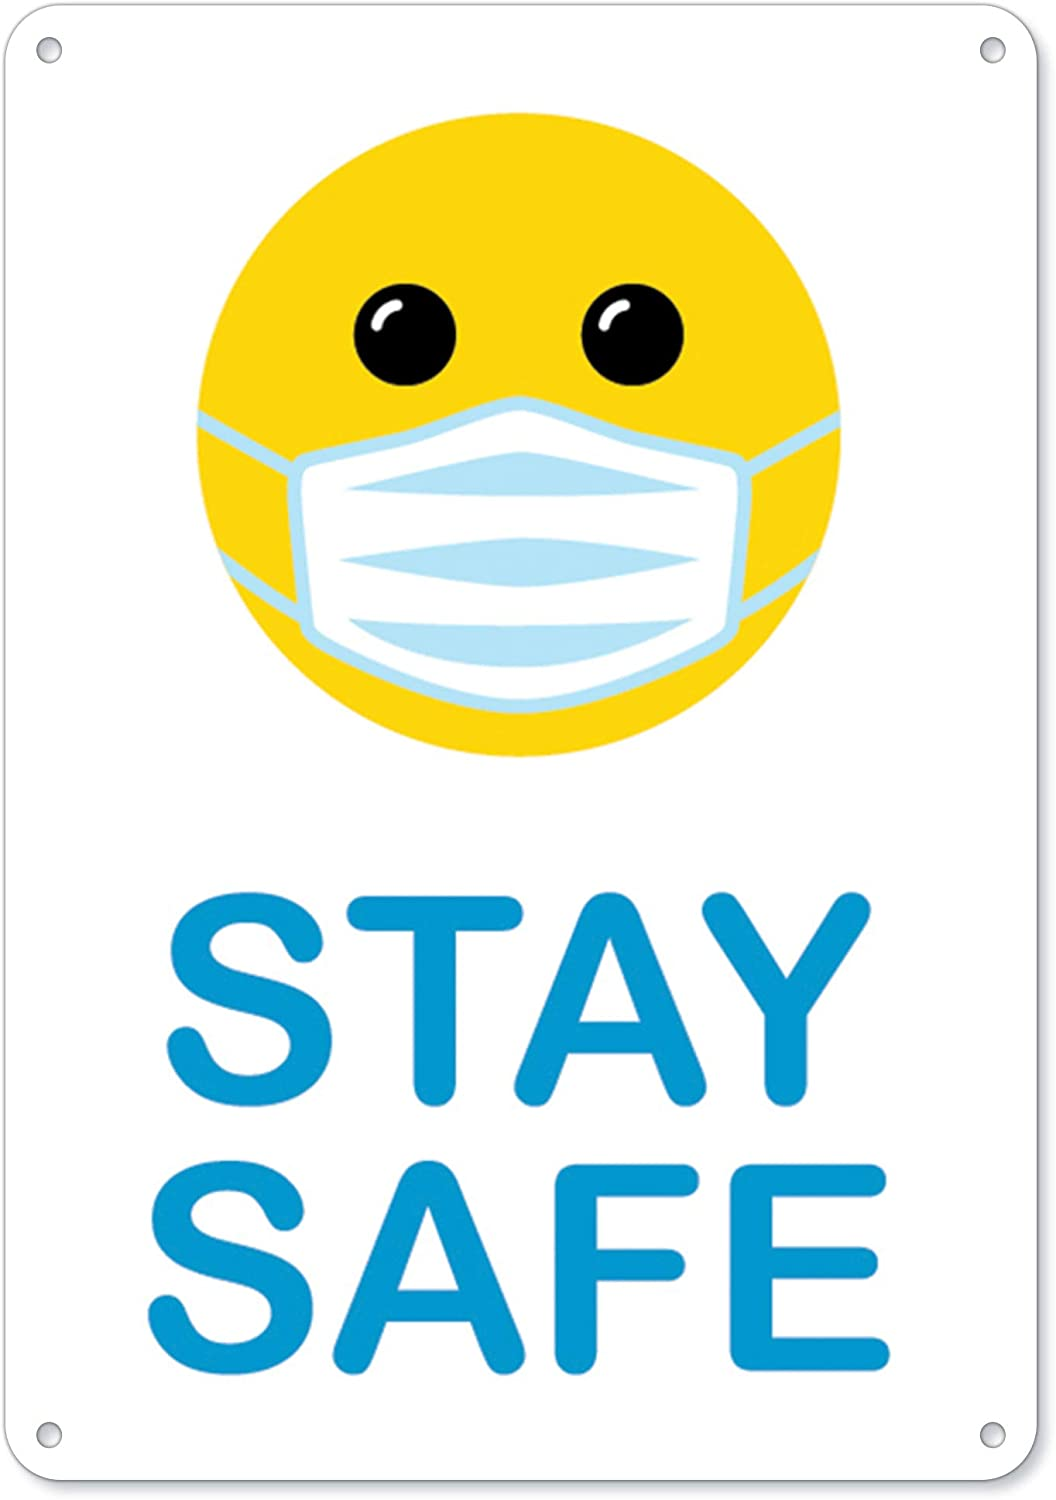 SignMission Public Safety Sign - Stay Smiley with Mask Face Safe OFFicial store Fees free!!